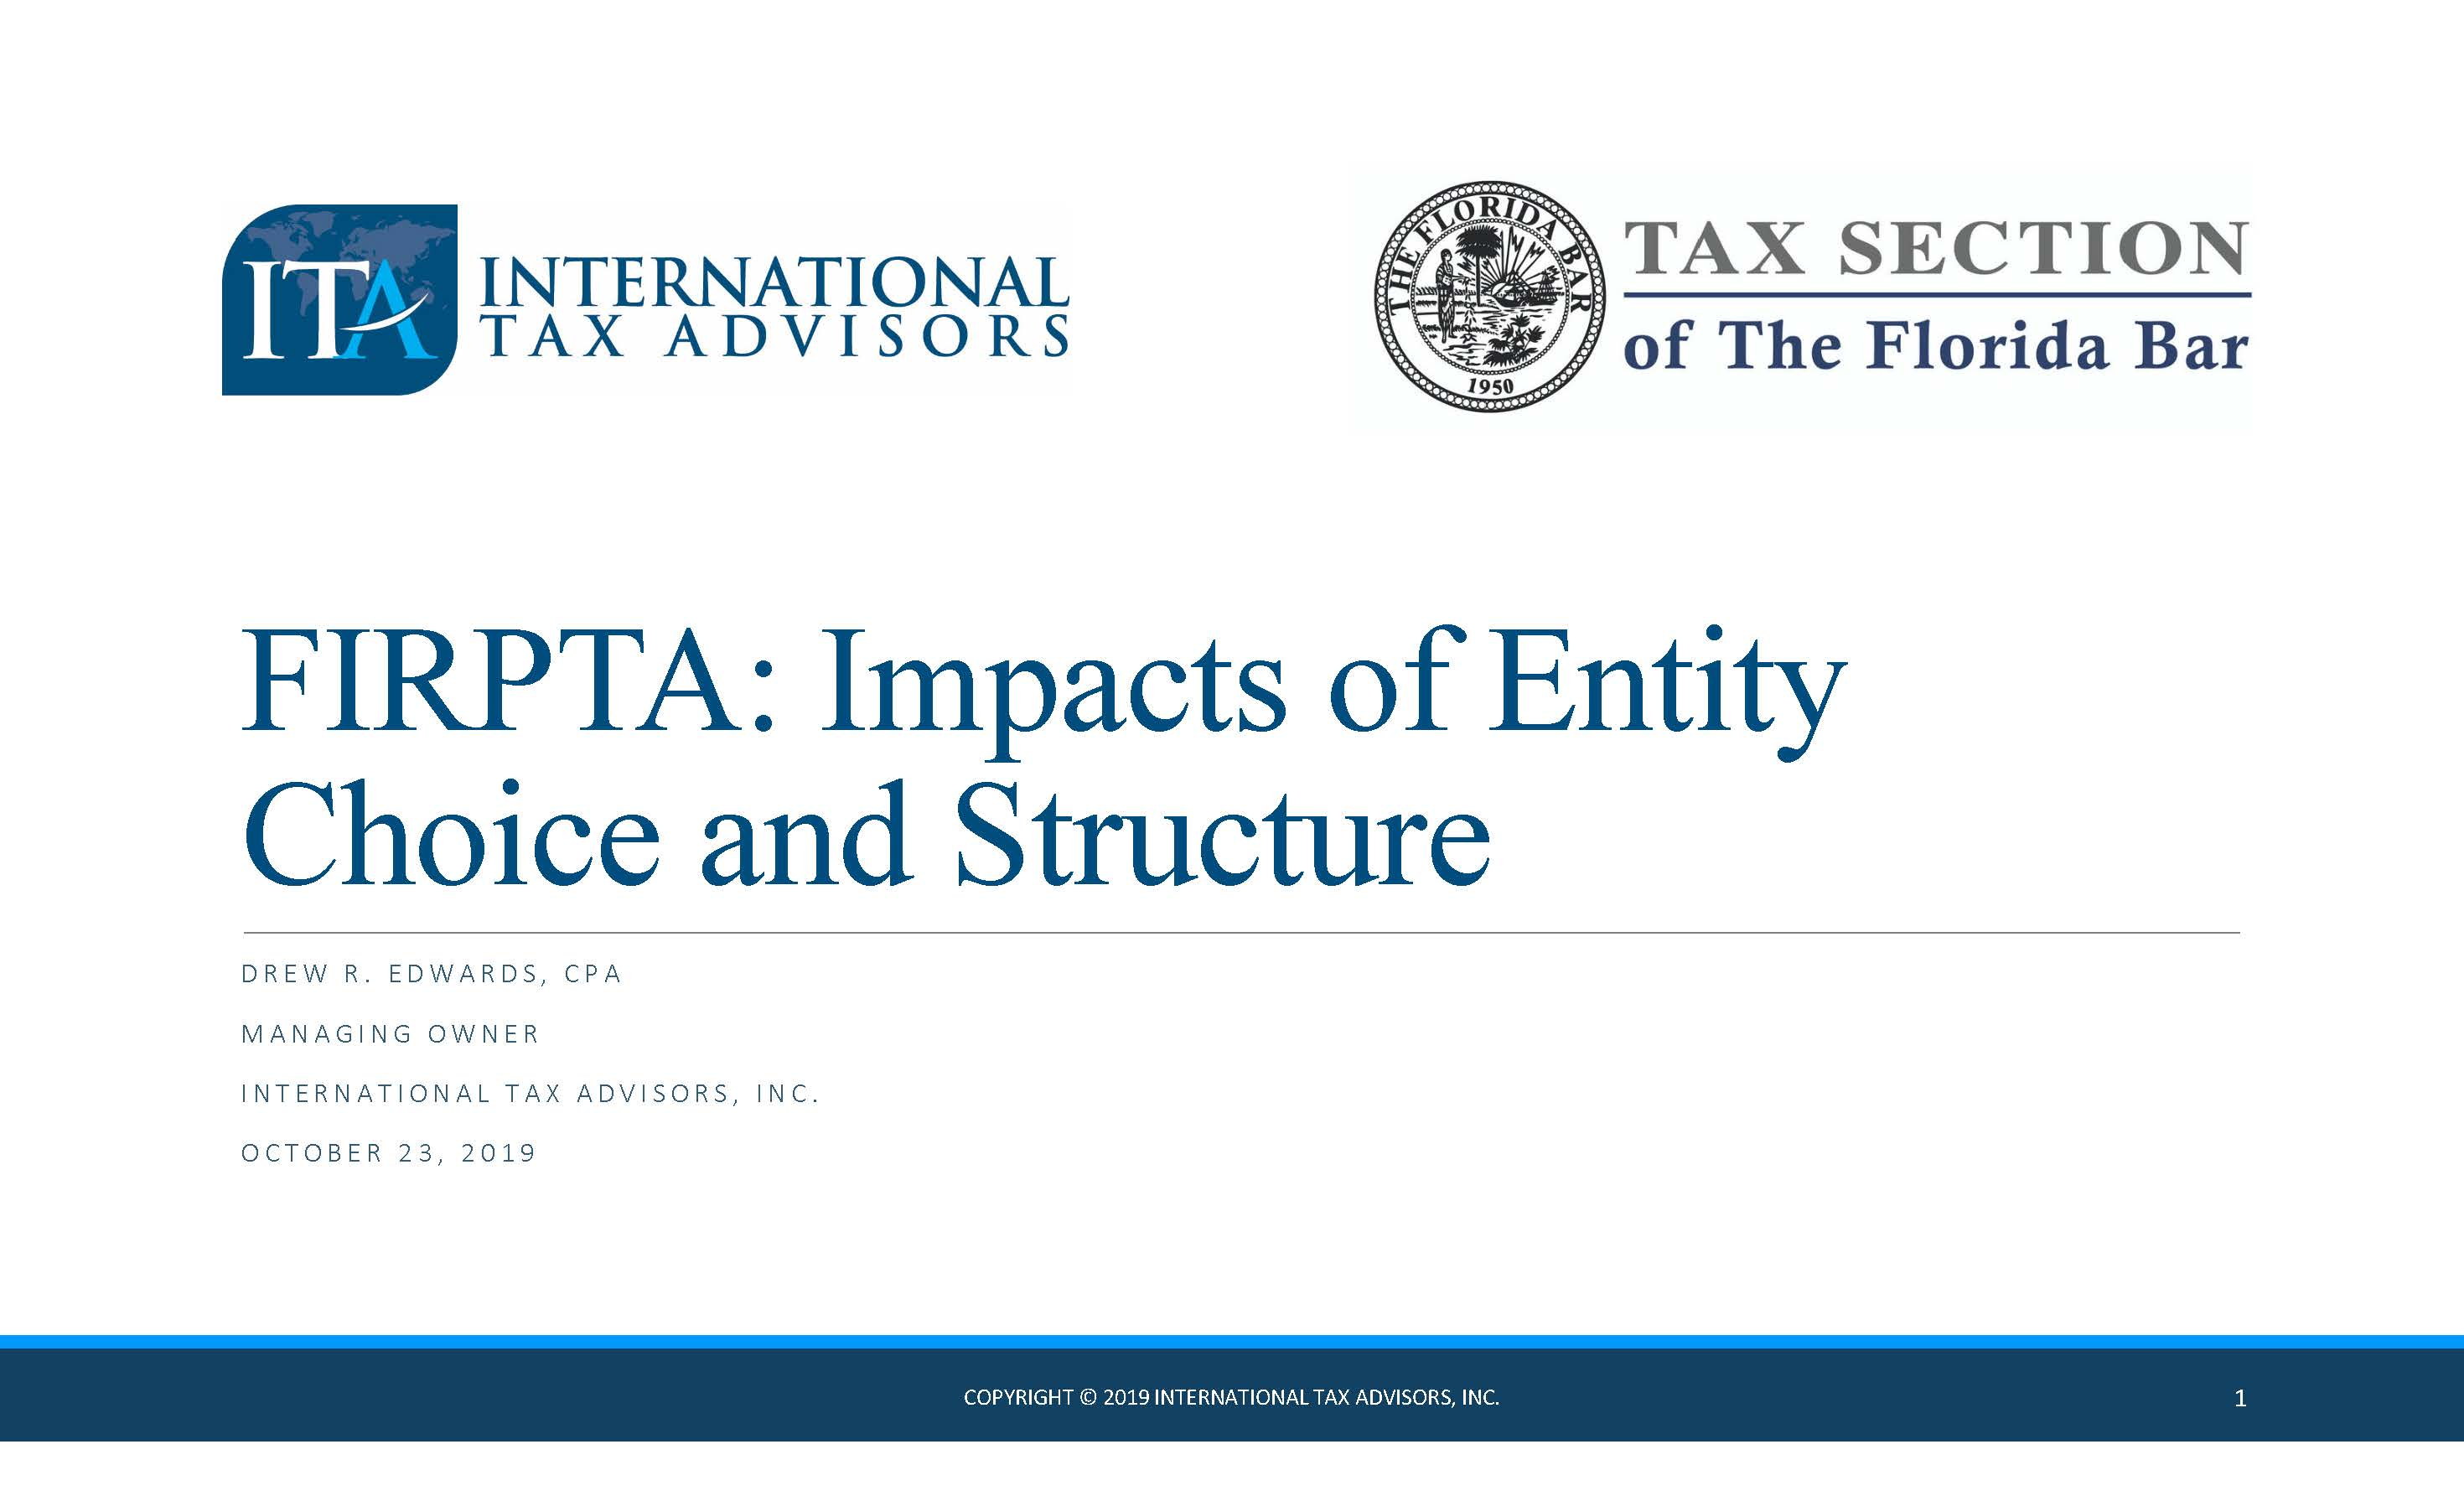 Cover Page - FL Bar CLE Presenation Materials, FIRPTA-Impacts of Entity Choice and Structure Oct 23 Drew Edwards International Tax Advisors, Inc. Miami CPA